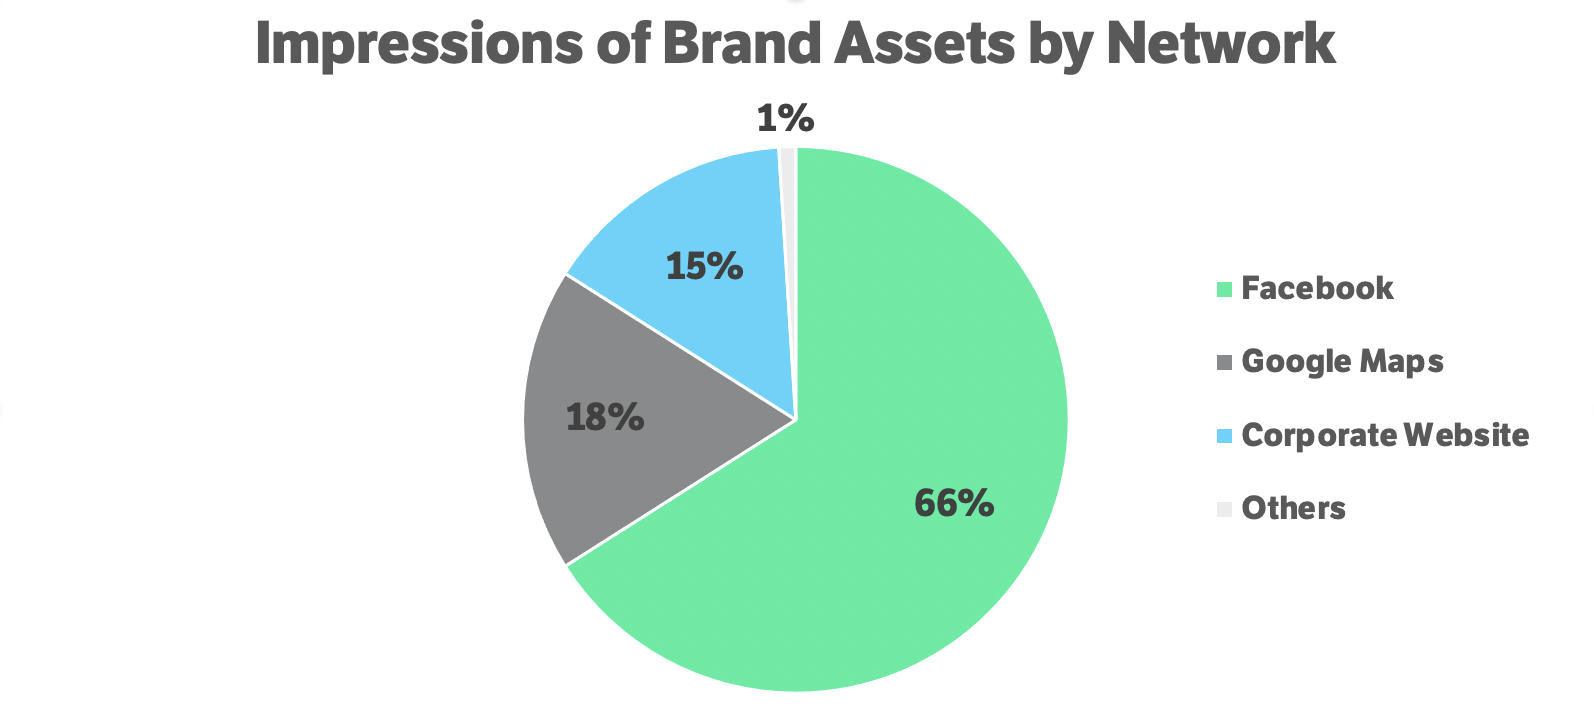 Impressions of Brand Assets by Network